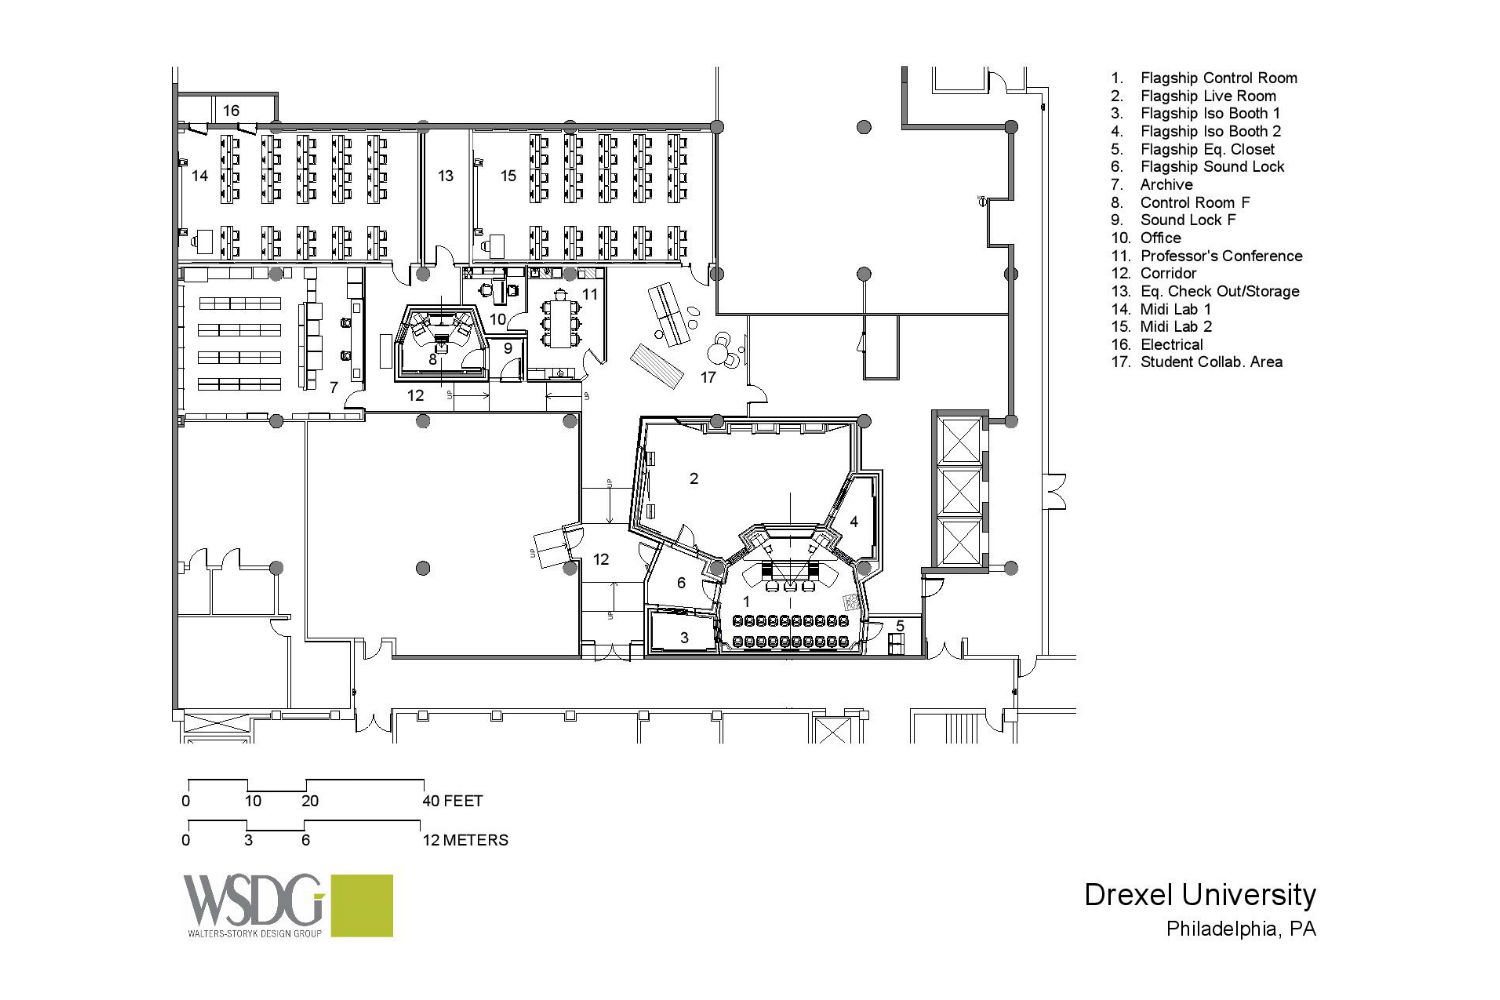 Drexel University in Philadelphia, PA is one of America's 15 largest universities. Their brand-new recording facilities, designed by the WSDG team, expands their music and recording program. Presentation drawing 1